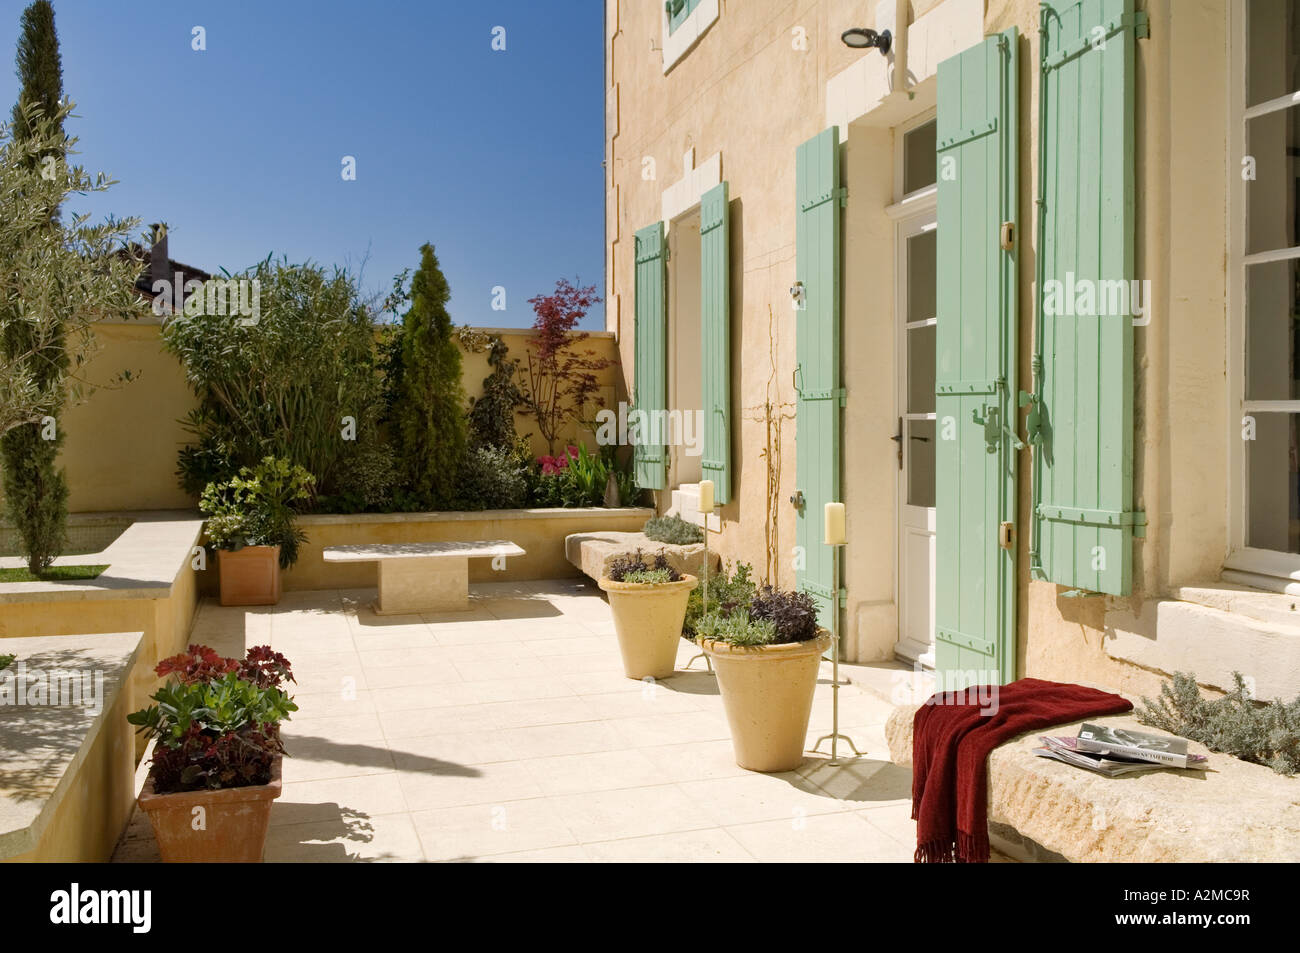 Garden Courtyard/ Patio Of Provençal Villa With Shutters, France